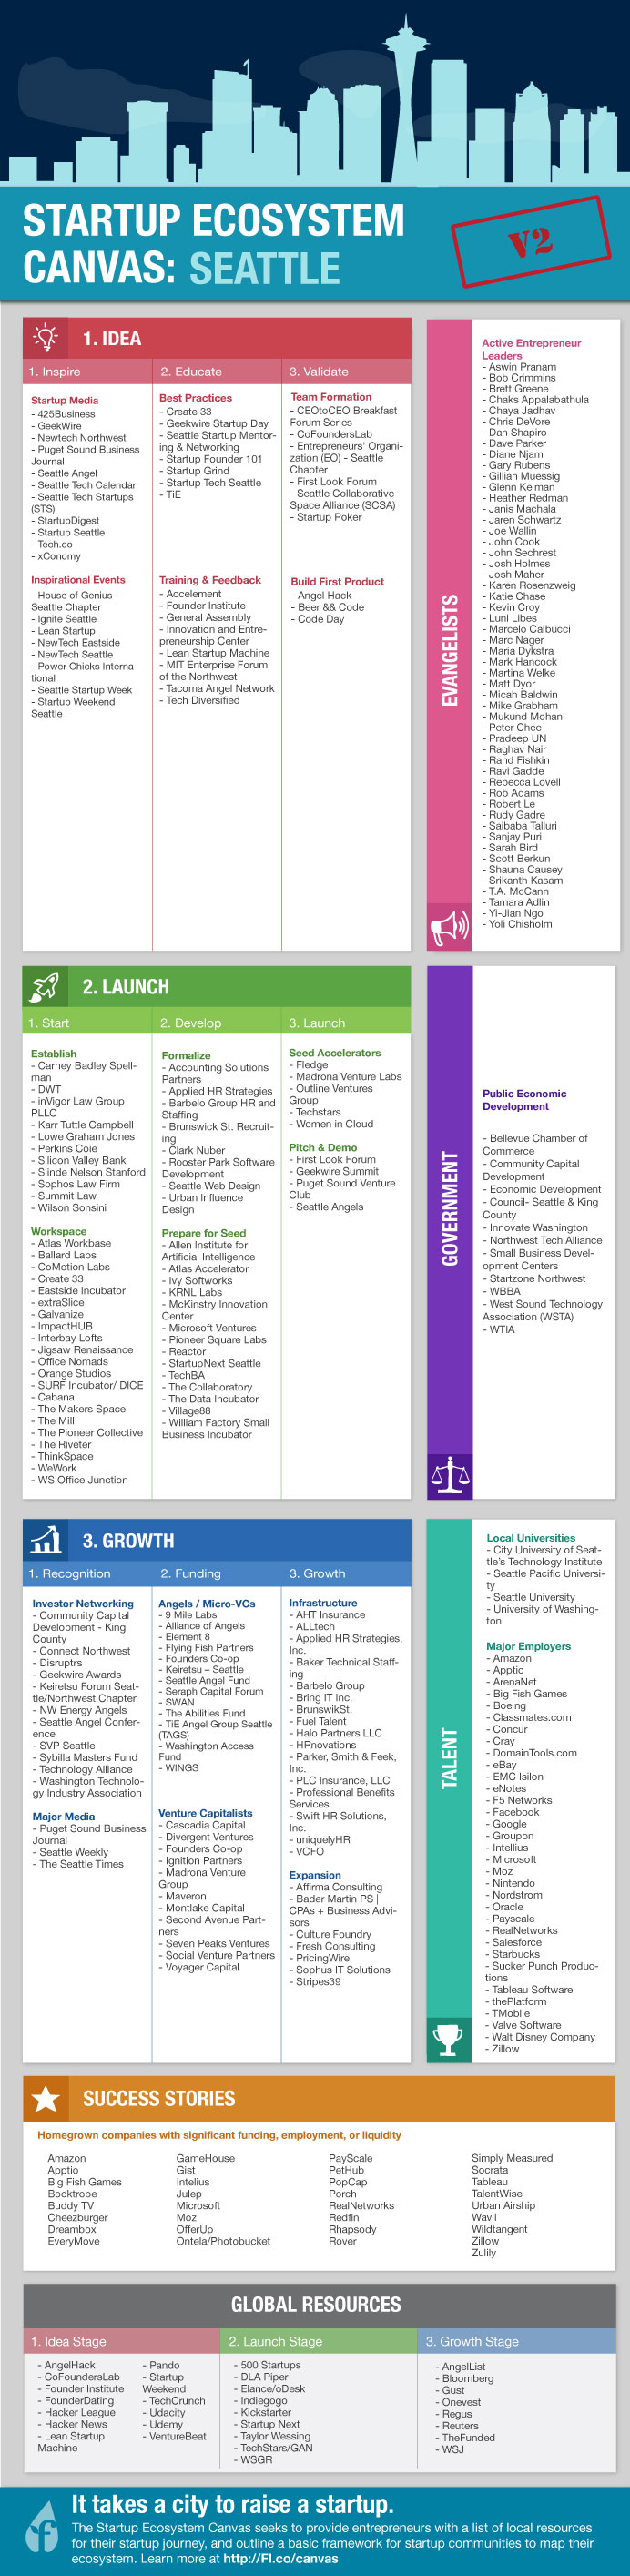 Seattle Startup Guide: A Giant List Of Resources for